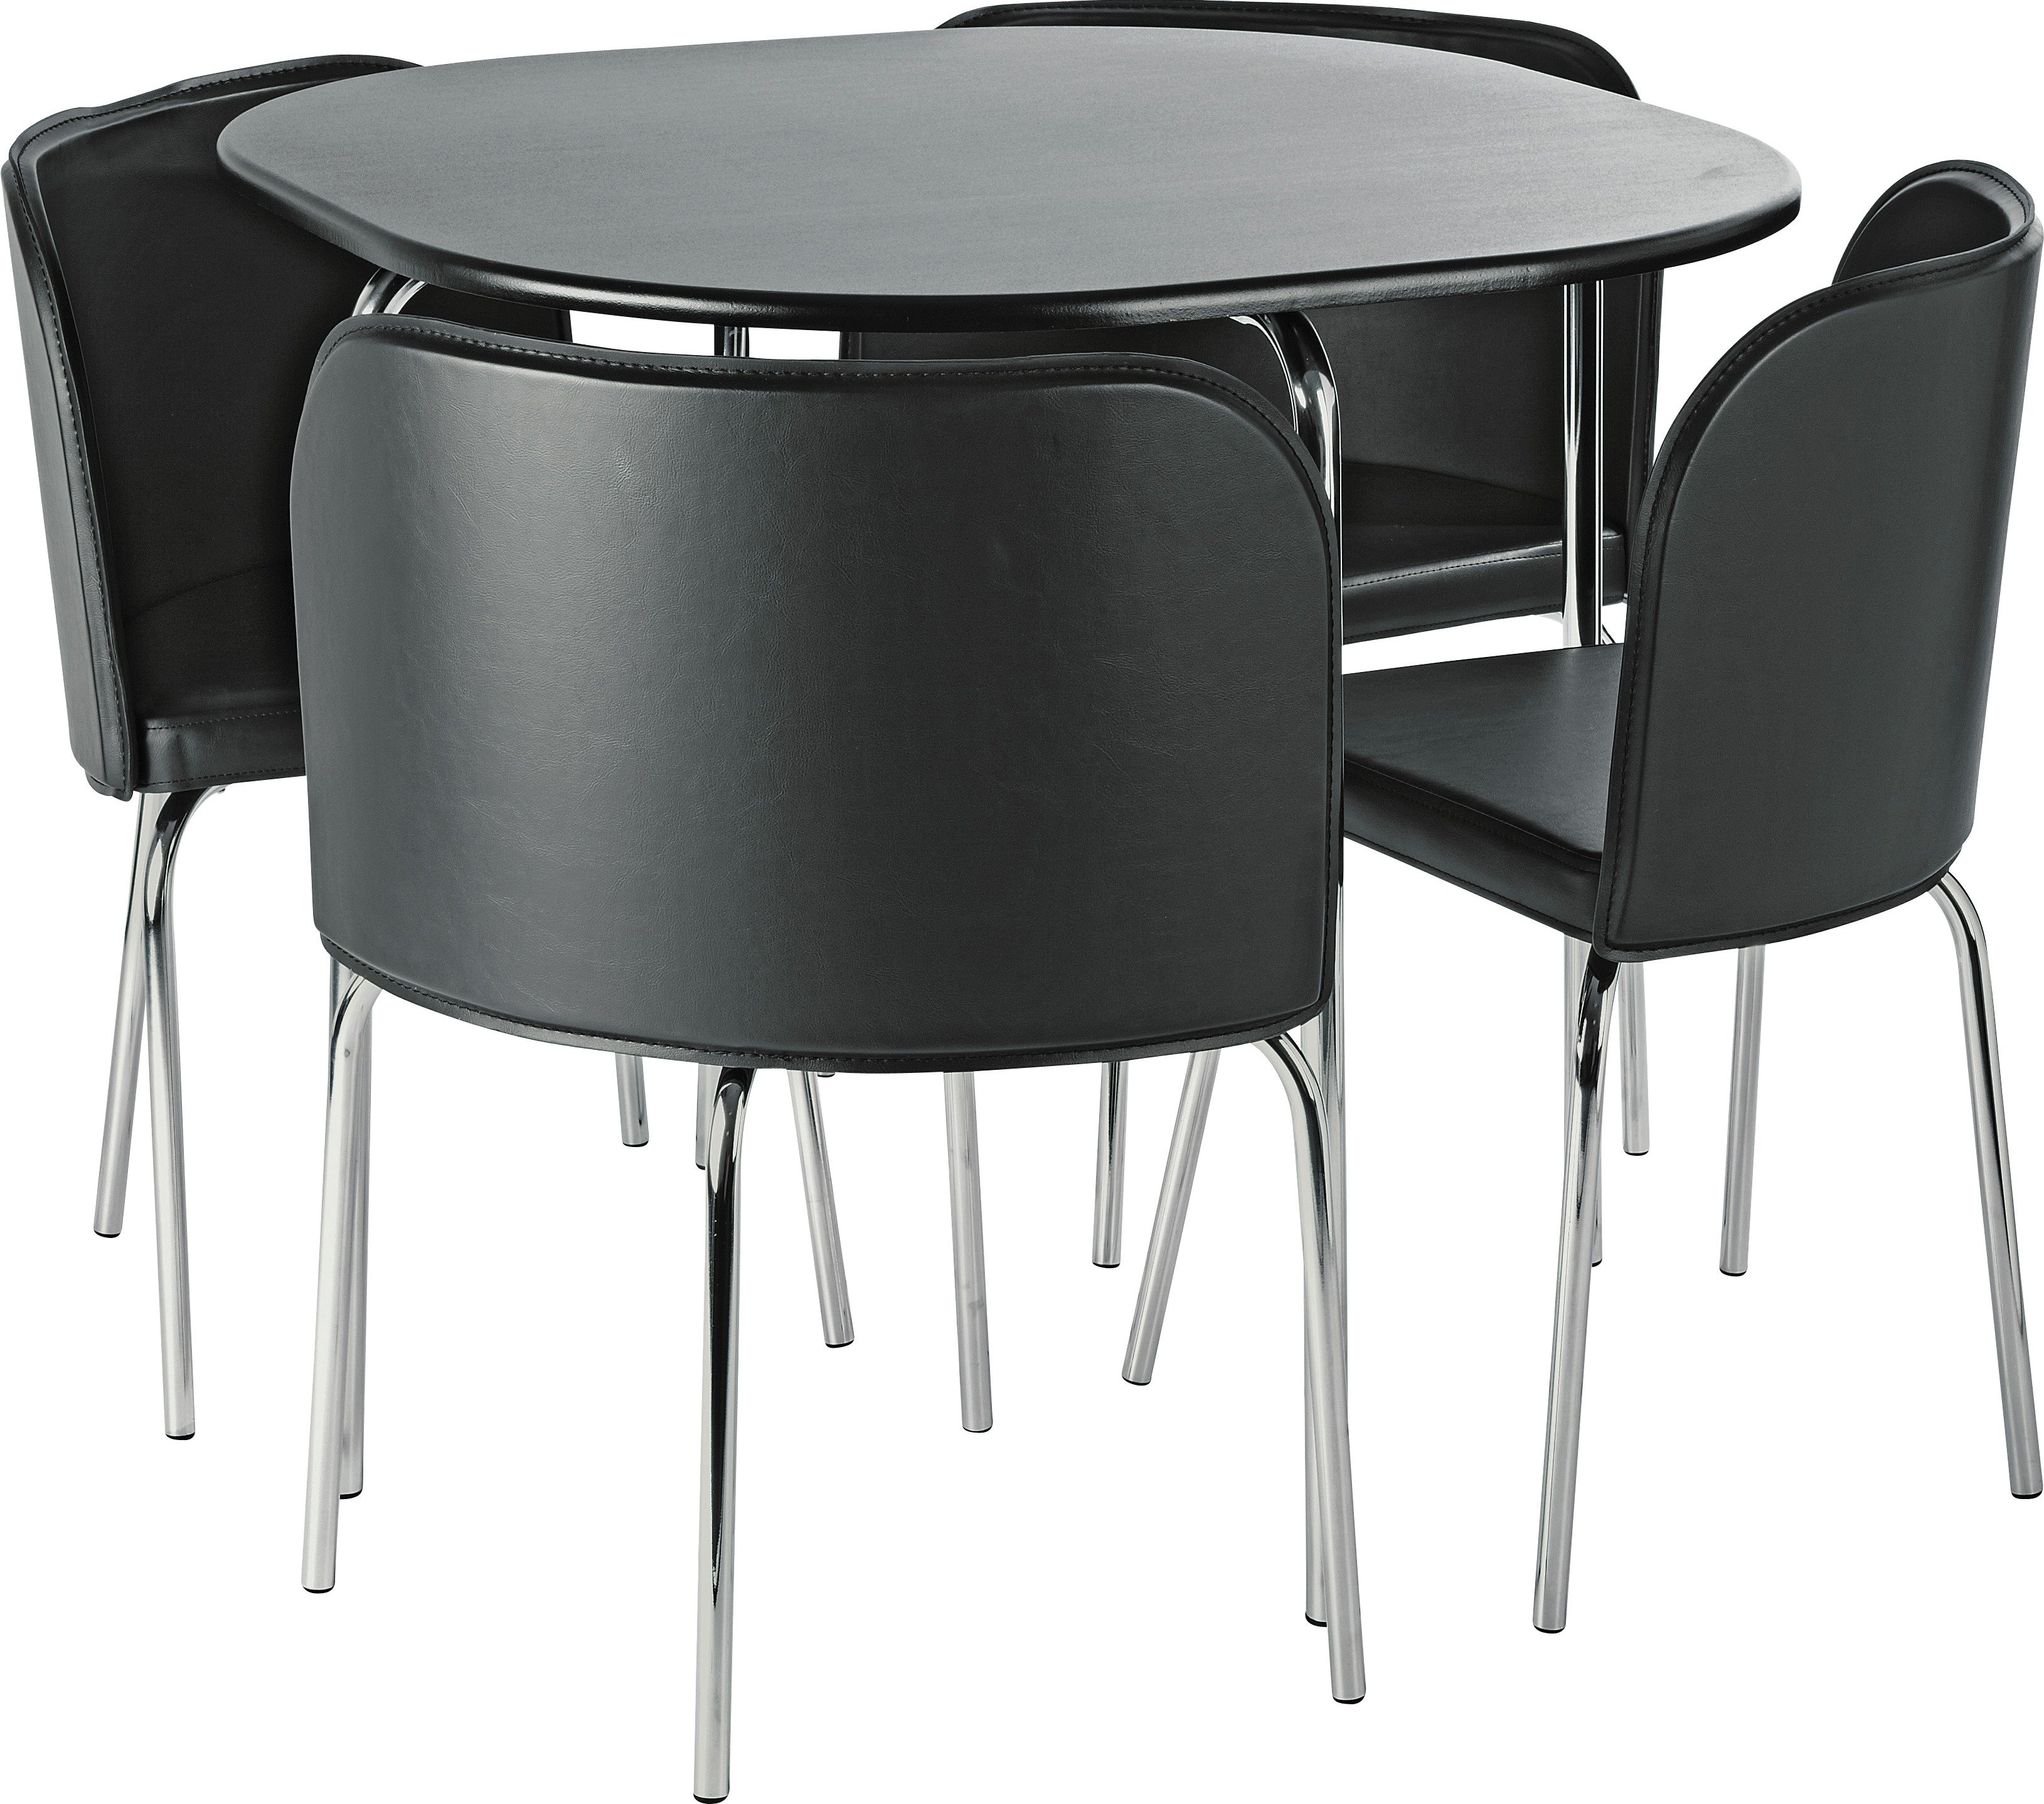 Argos Dining Table And Chairs Sale: SALE On Argos Home Amparo Black Dining Table & 4 Black